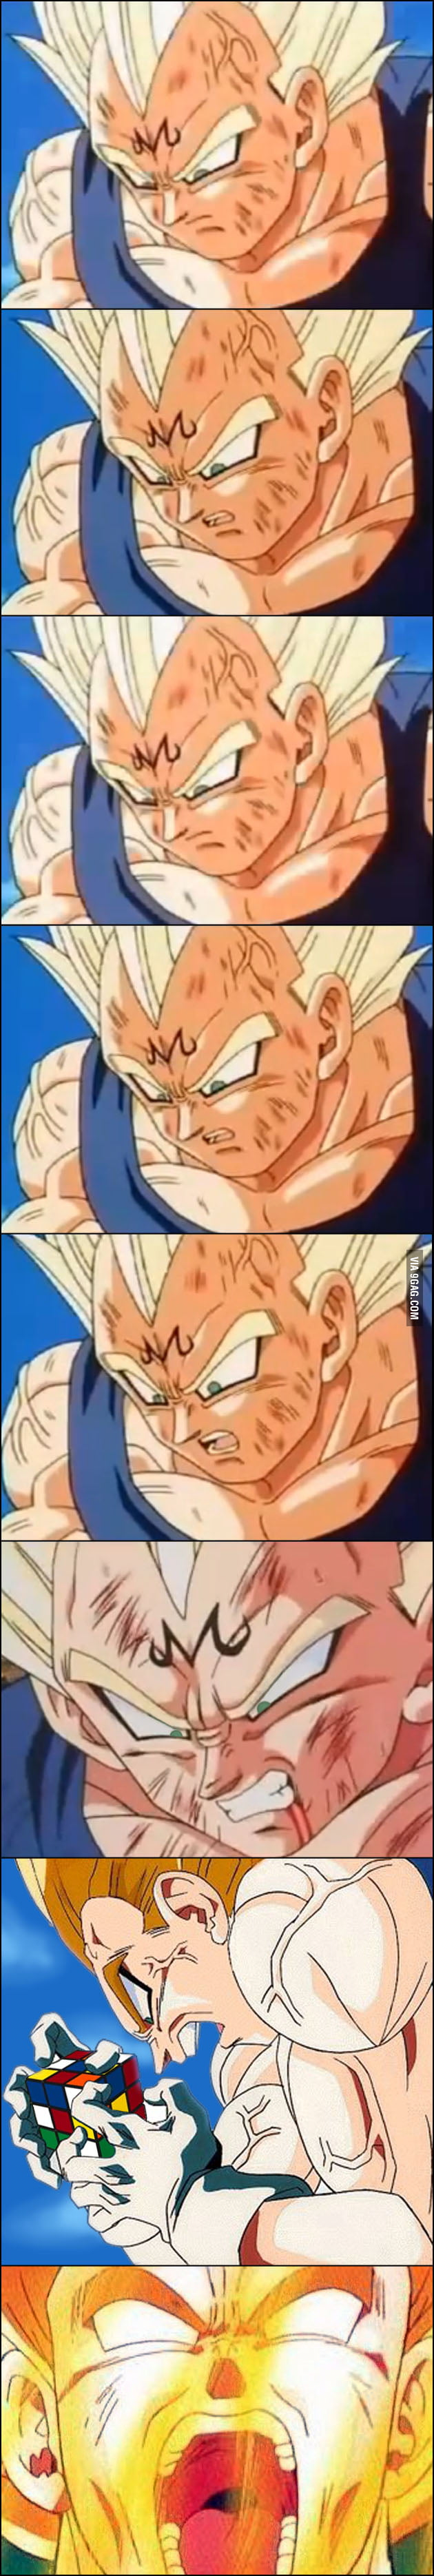 Now I understand why Vegeta is so mad